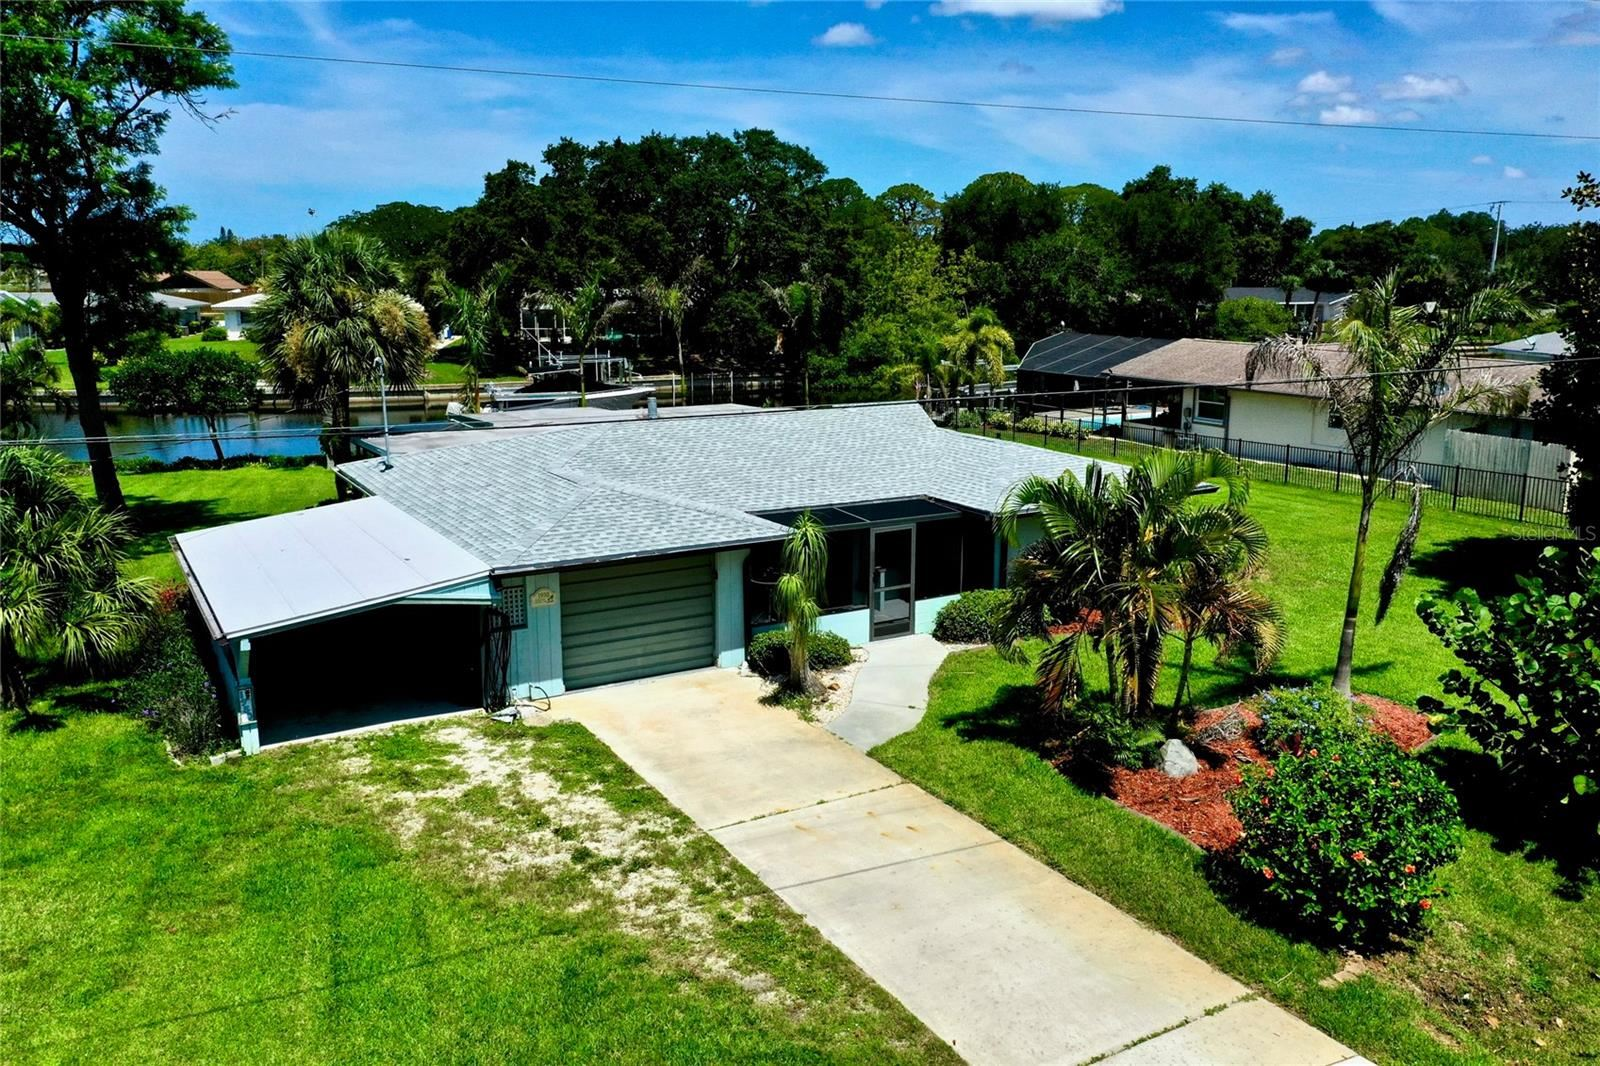 Photo of 1950 FORKED CREEK DRIVE, ENGLEWOOD, FL 34223 (MLS # D6119988)